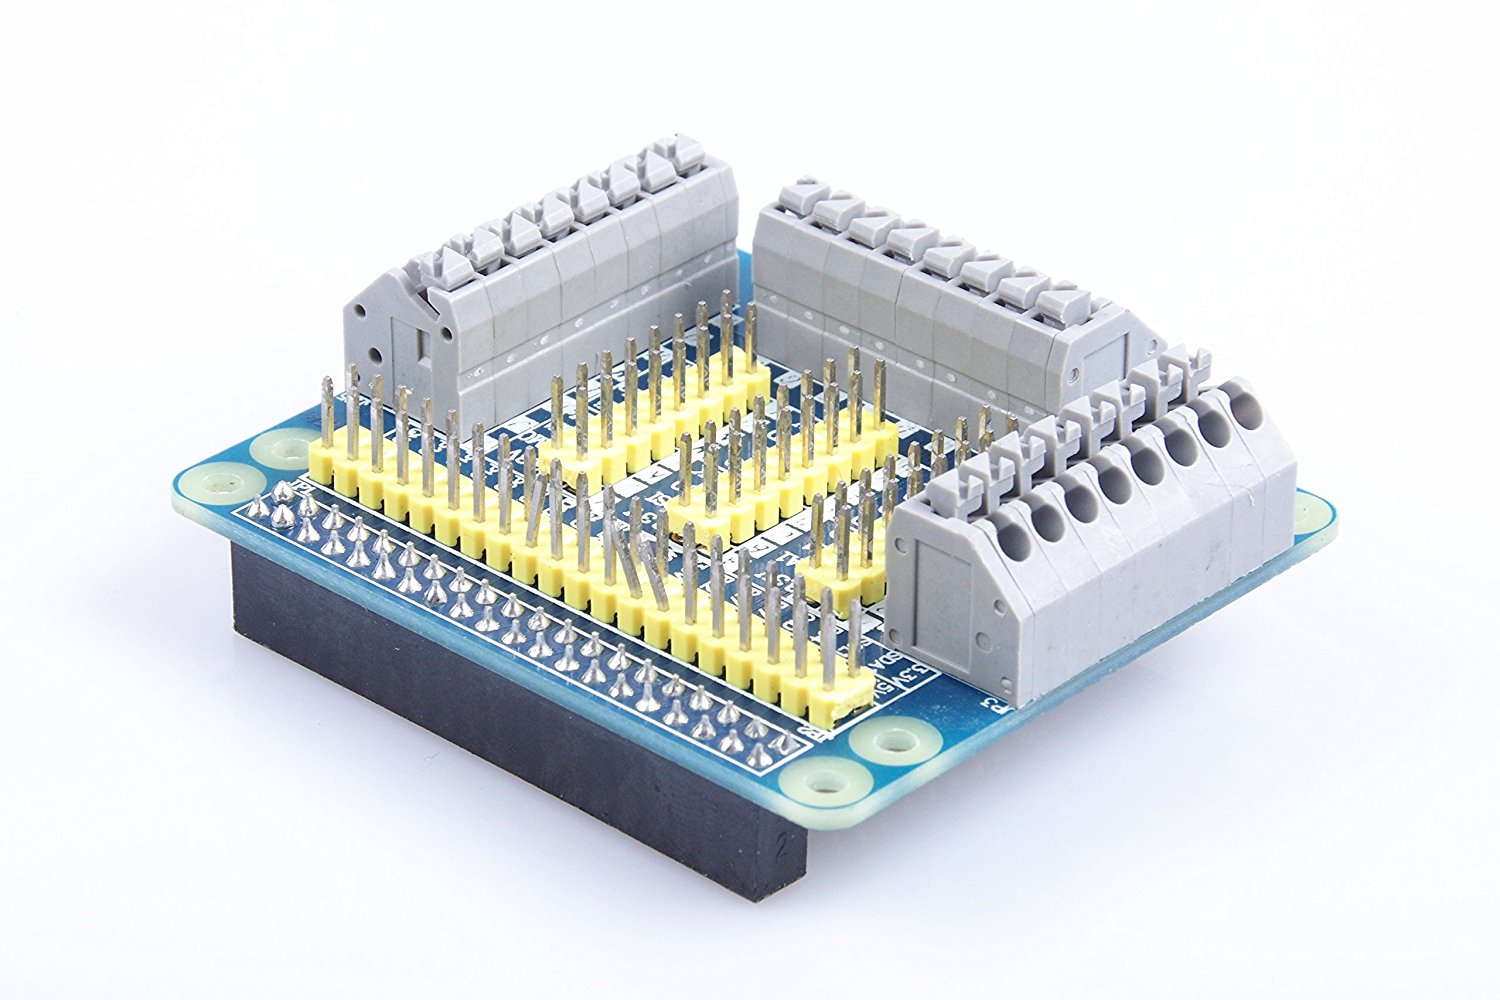 Raspberry <font><b>Pi</b></font> 2 / <font><b>3</b></font> Model B GPIO Extension <font><b>Board</b></font> GPIO multifunction expansion <font><b>board</b></font> For <font><b>Orange</b></font> <font><b>Pi</b></font> PC Banana <font><b>Pi</b></font> M3/Pro image